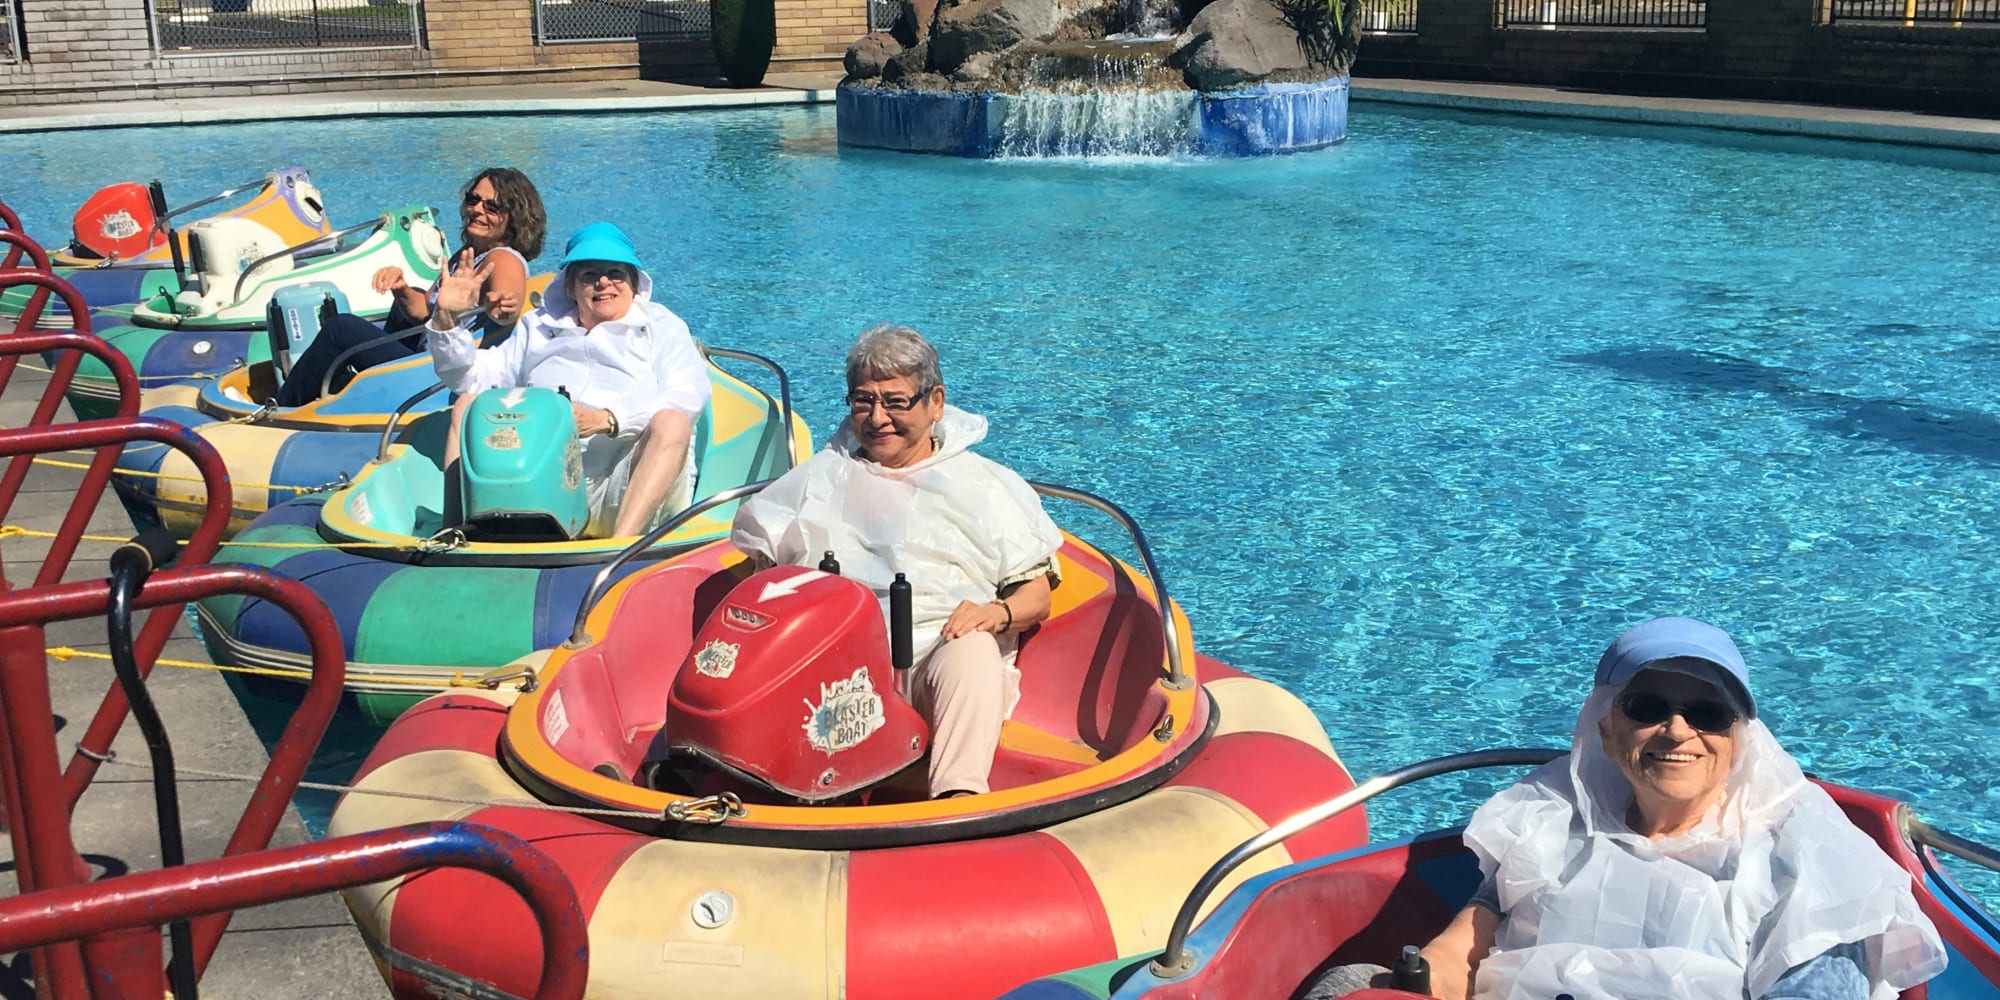 Residents from Colonial Gardens Gracious Retirement Living in Beverly, Massachusetts